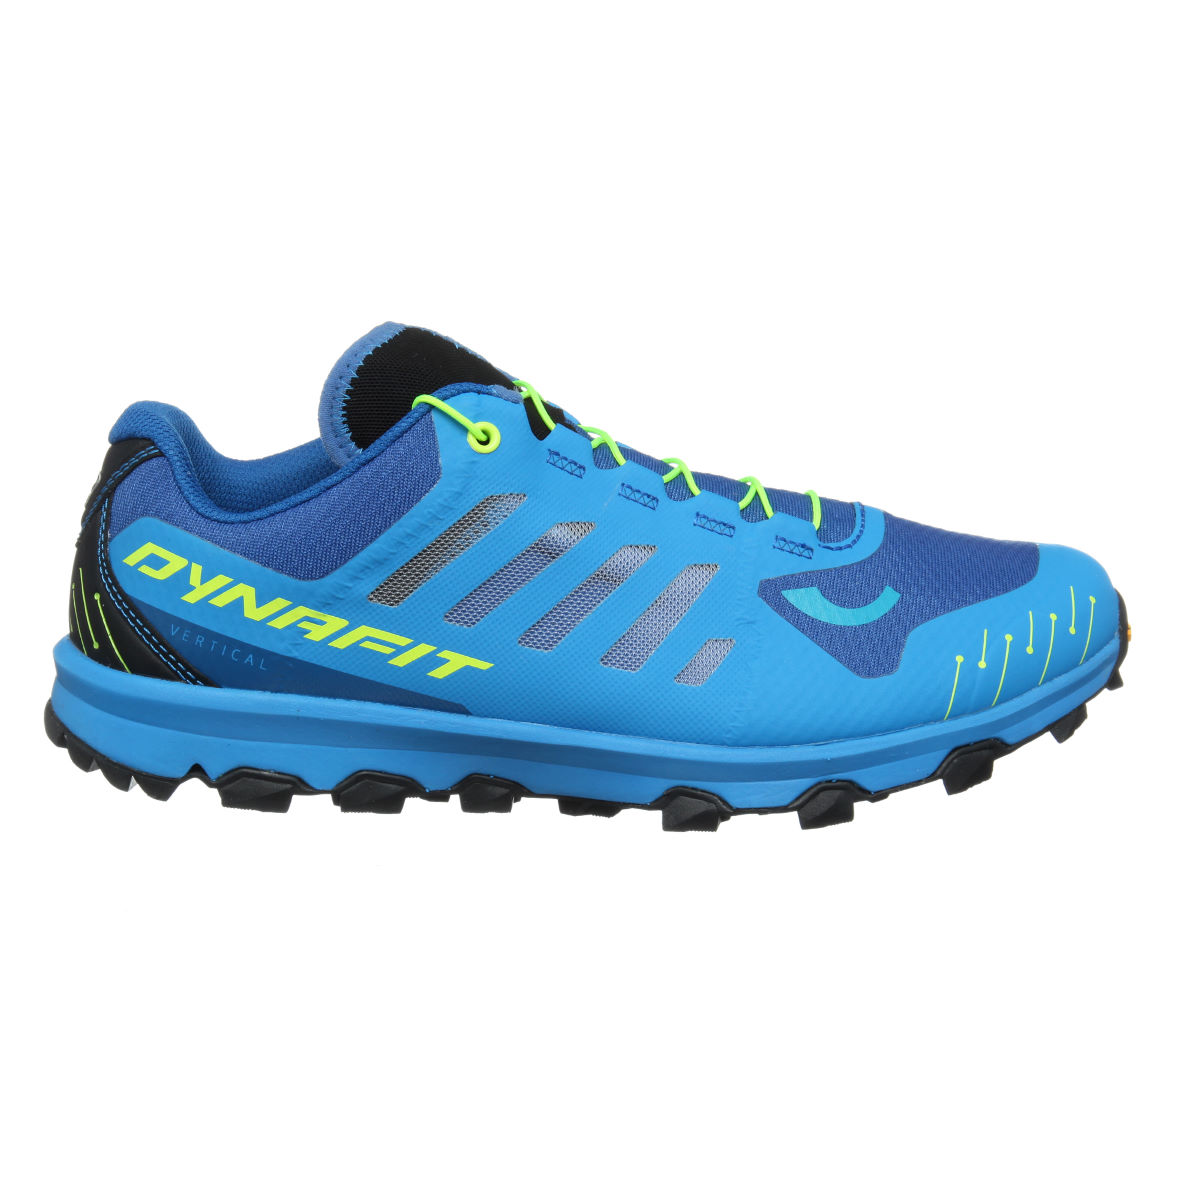 Chaussures Dynafit Feline Vertical - 7,5 UK Blue/Yellow